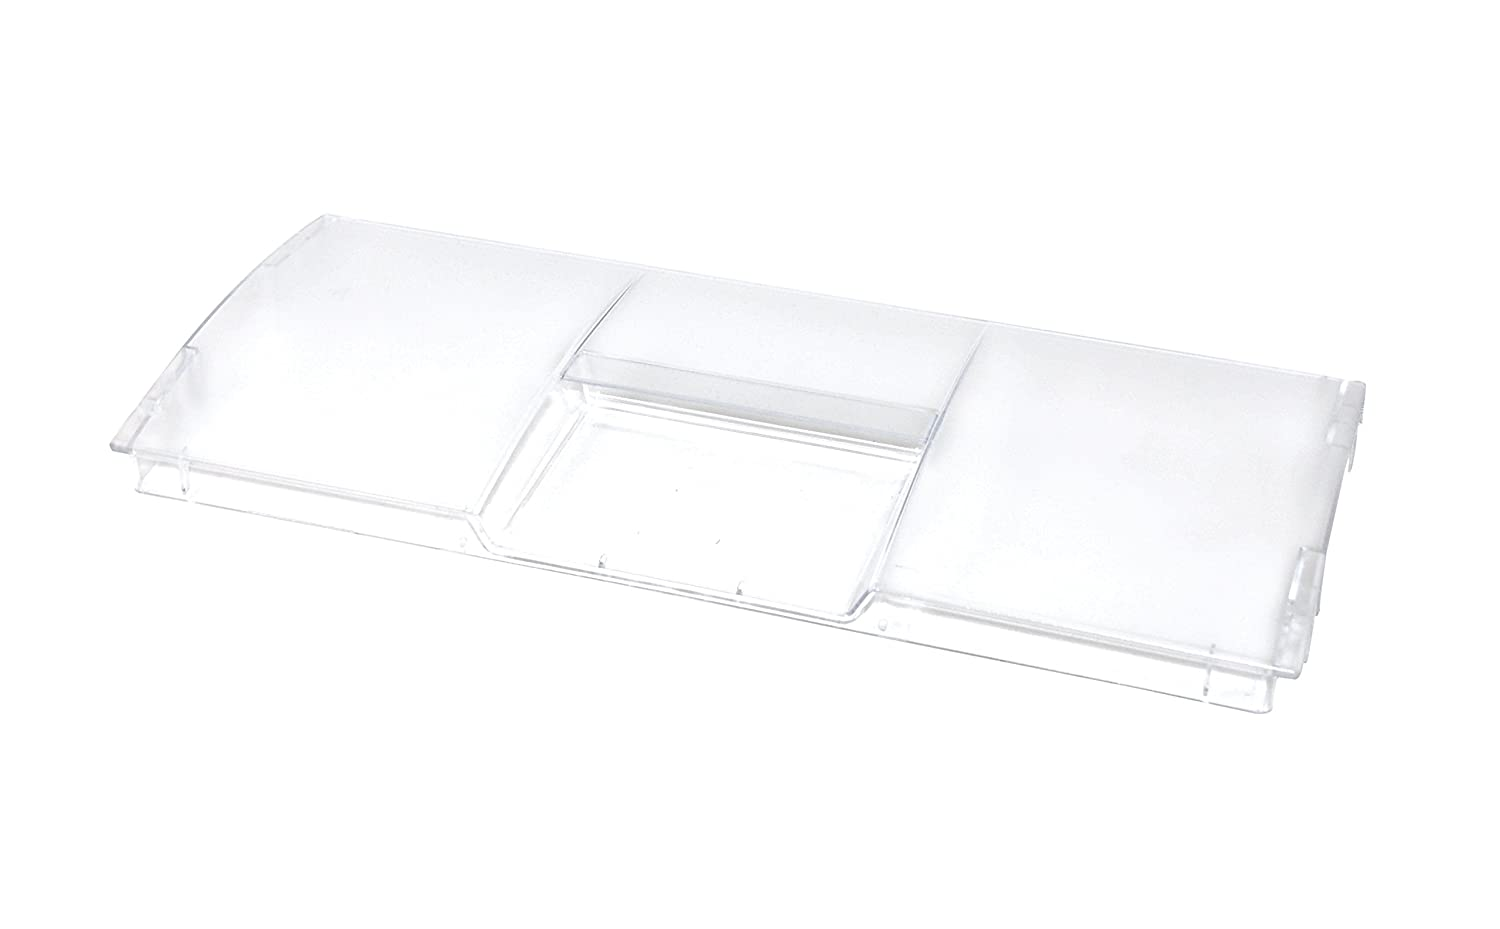 Genuine Beko CDA541W CDA542S CDA542W Fridge Freezer Front Basket Cover